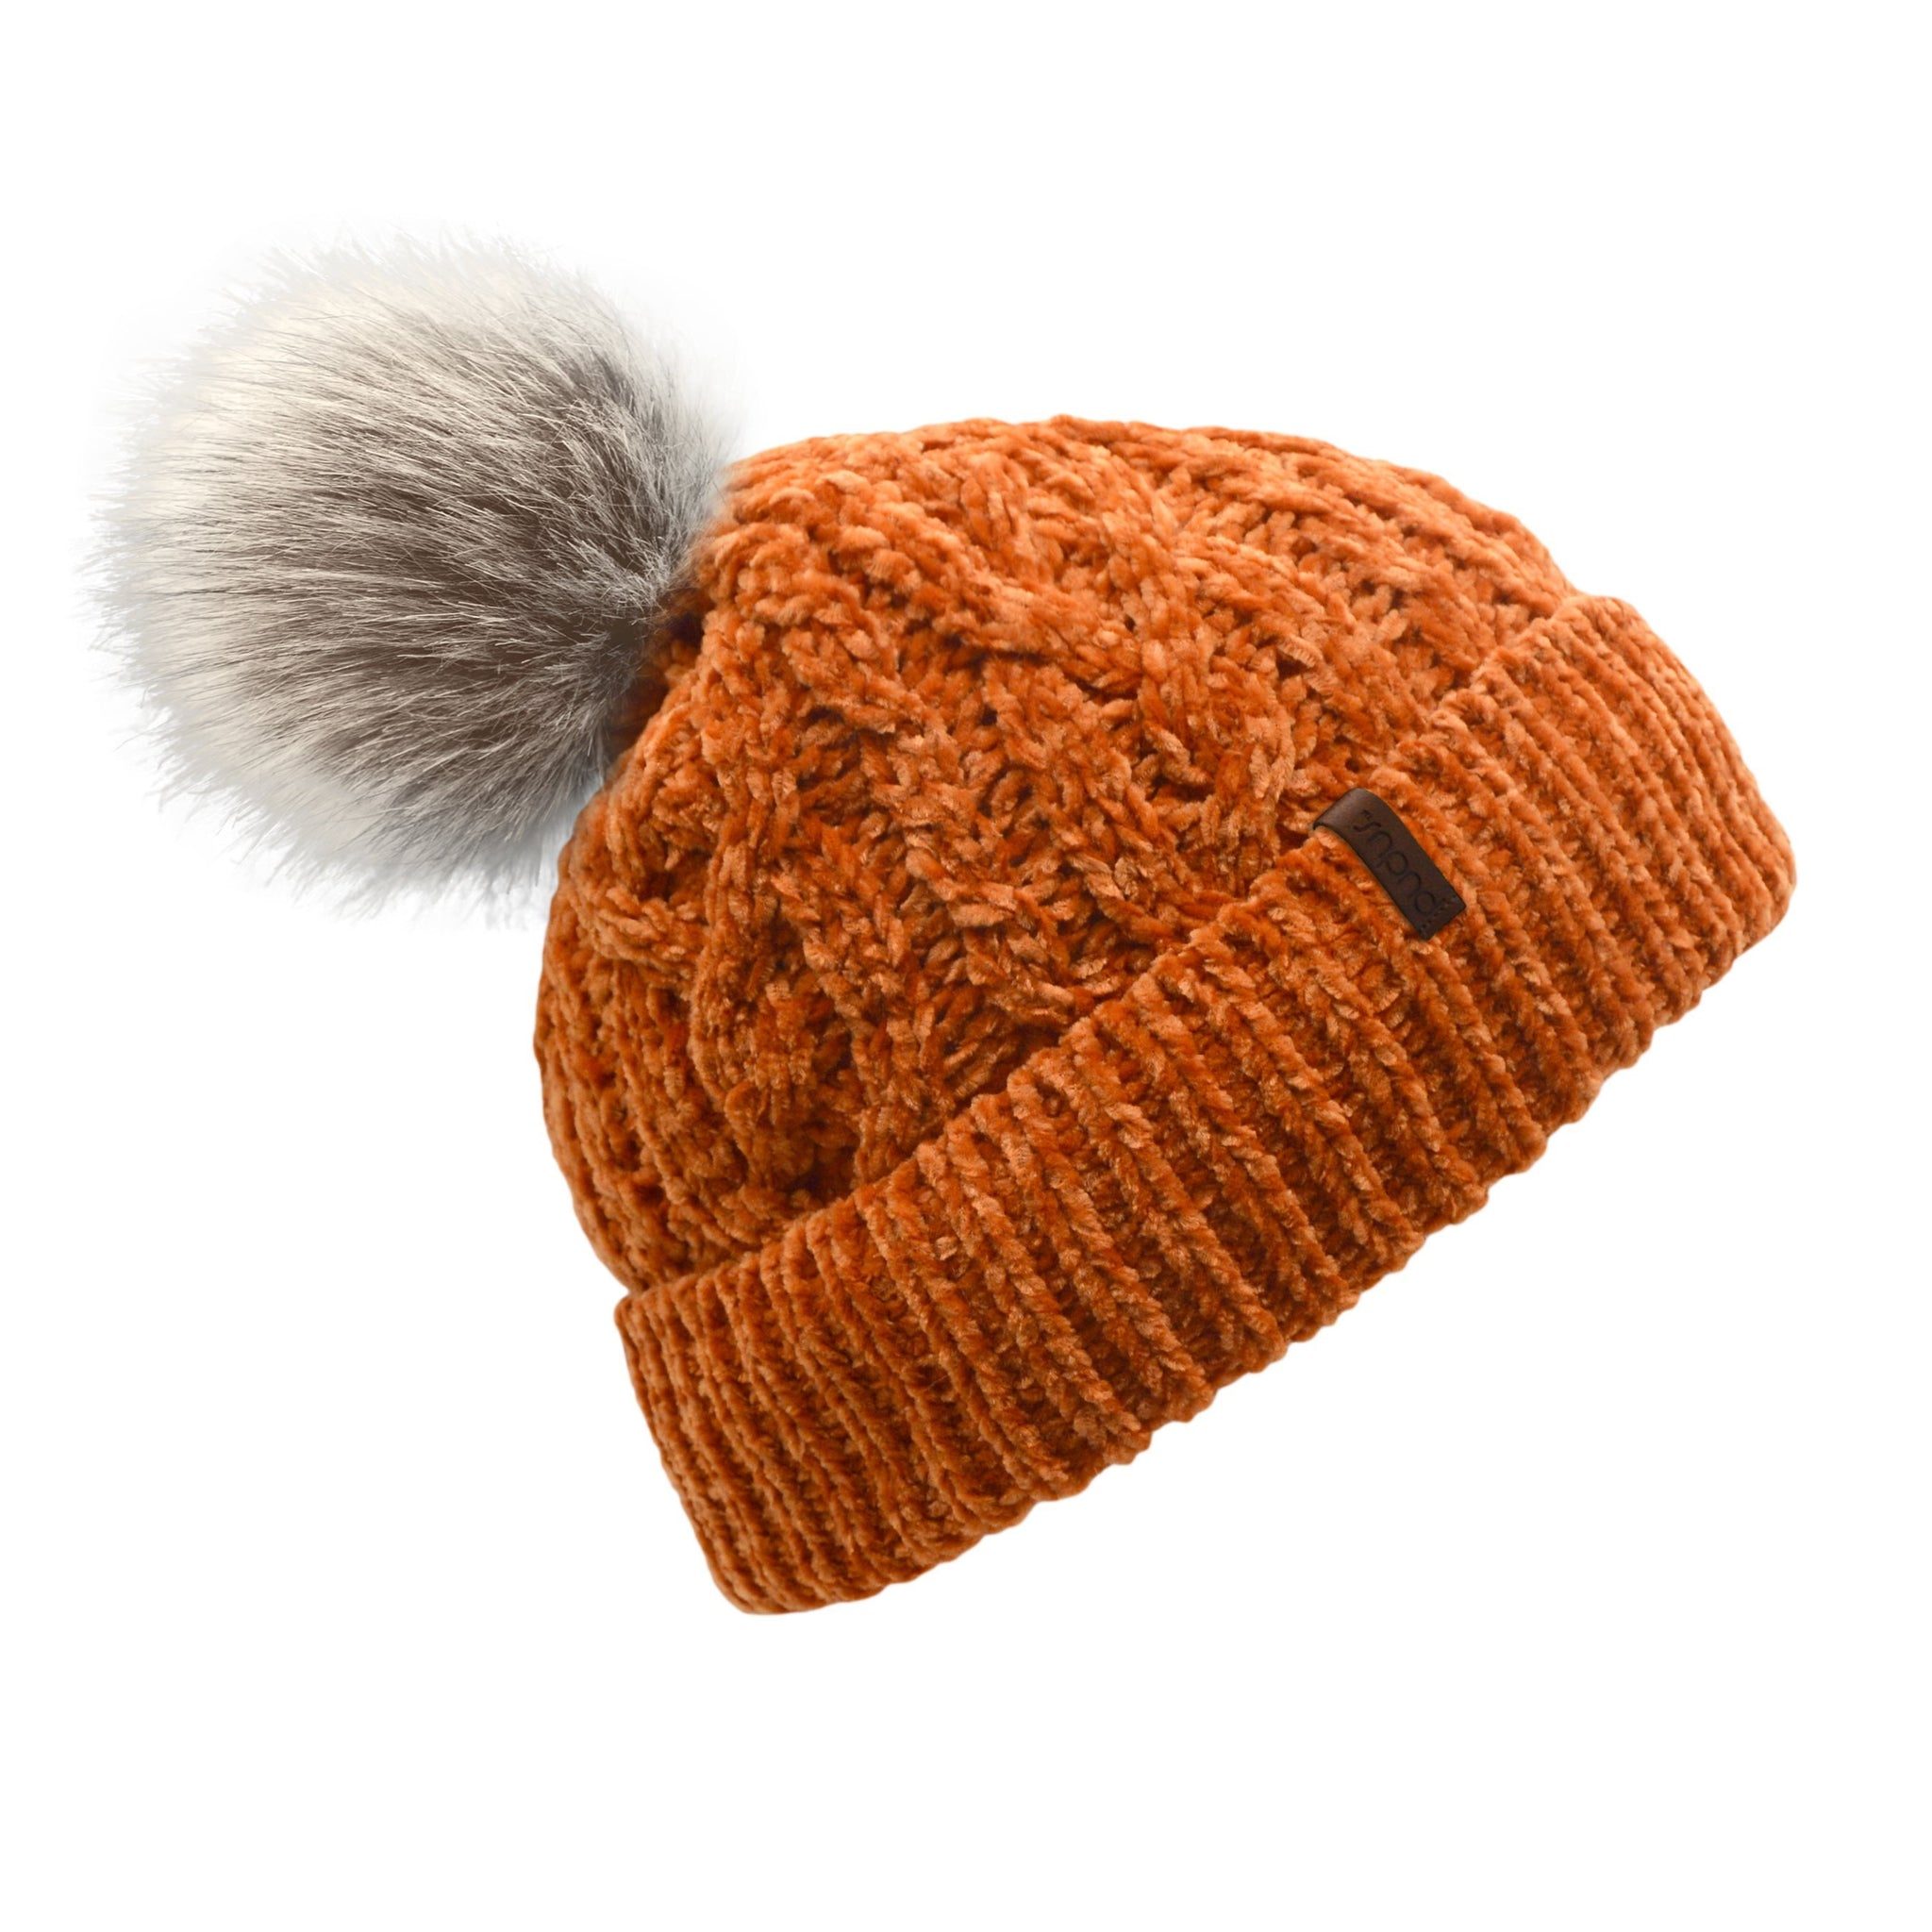 Pudus Winter Cable Knit Chenille Toque in Peach Caramel with Fuzzy Pom Pom and Faux Fur Sherpa Fleece Lining